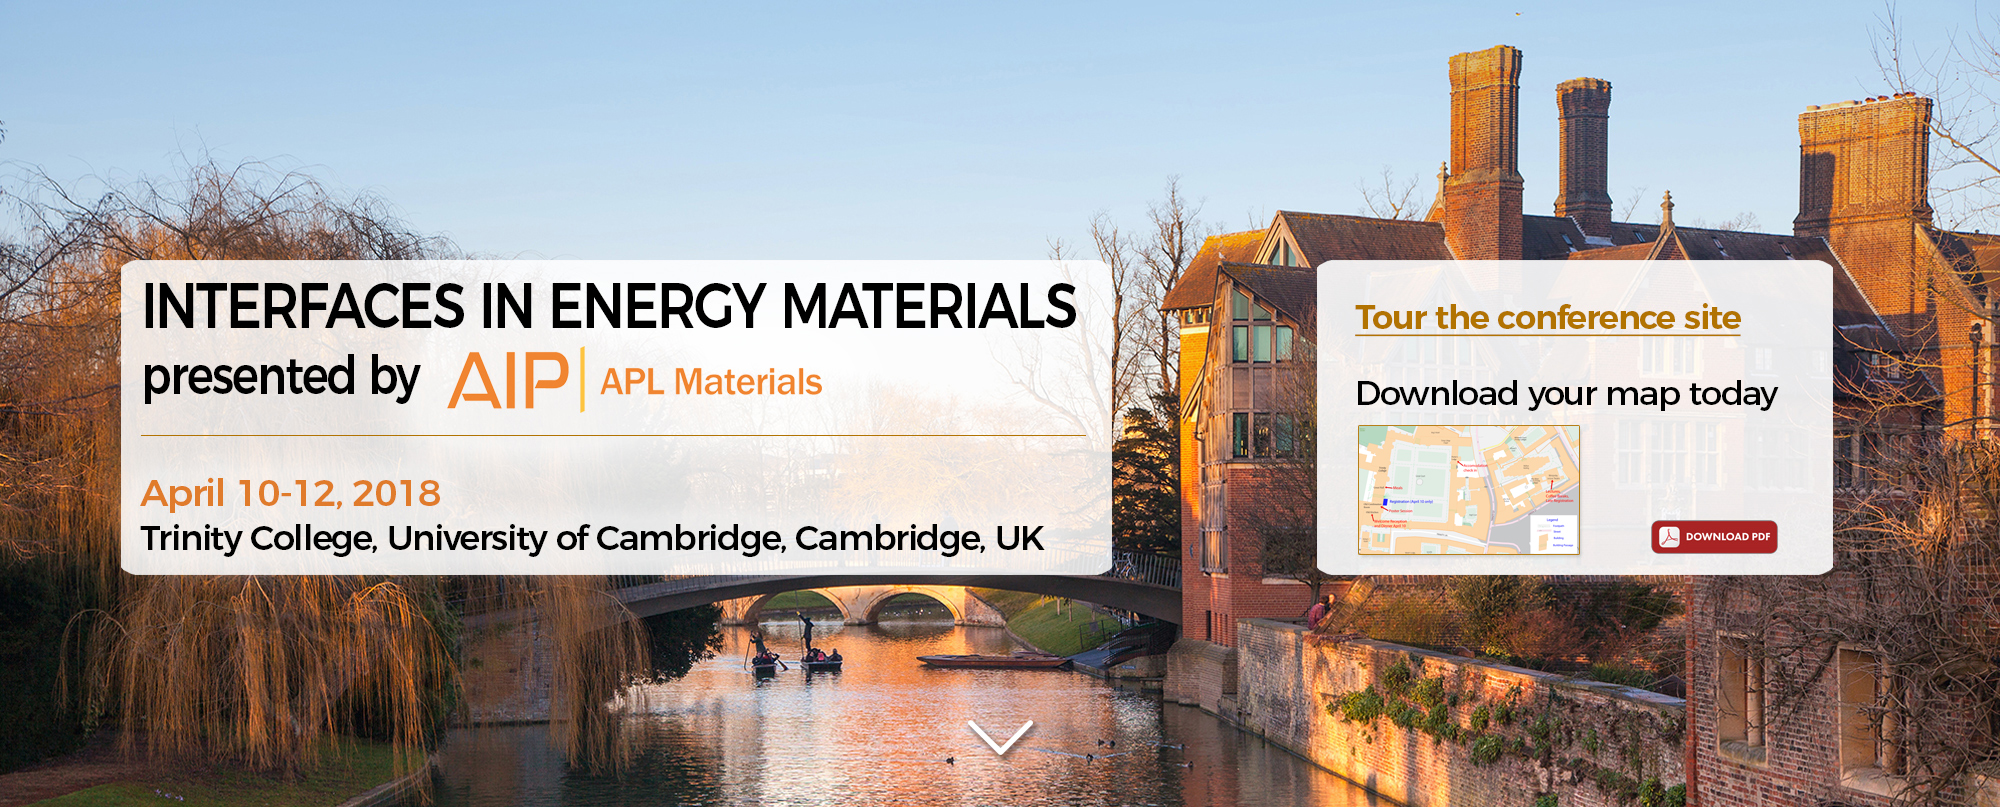 Interfaces are critical to achieving next generation energy systems with high performance and stability. However, little is known about the potential challenges associated with interface pheonomena in these systems. This conference will bring together leaders in the fields of thermoelectrics, solid-state batteries, solid-oxide fuel cells, and interface electronics to discuss the latest discoveries that have been made in their respective communities regarding the interface. The aim is that collaborative discussions among these groups will direct the future of interfaces in energy materials.